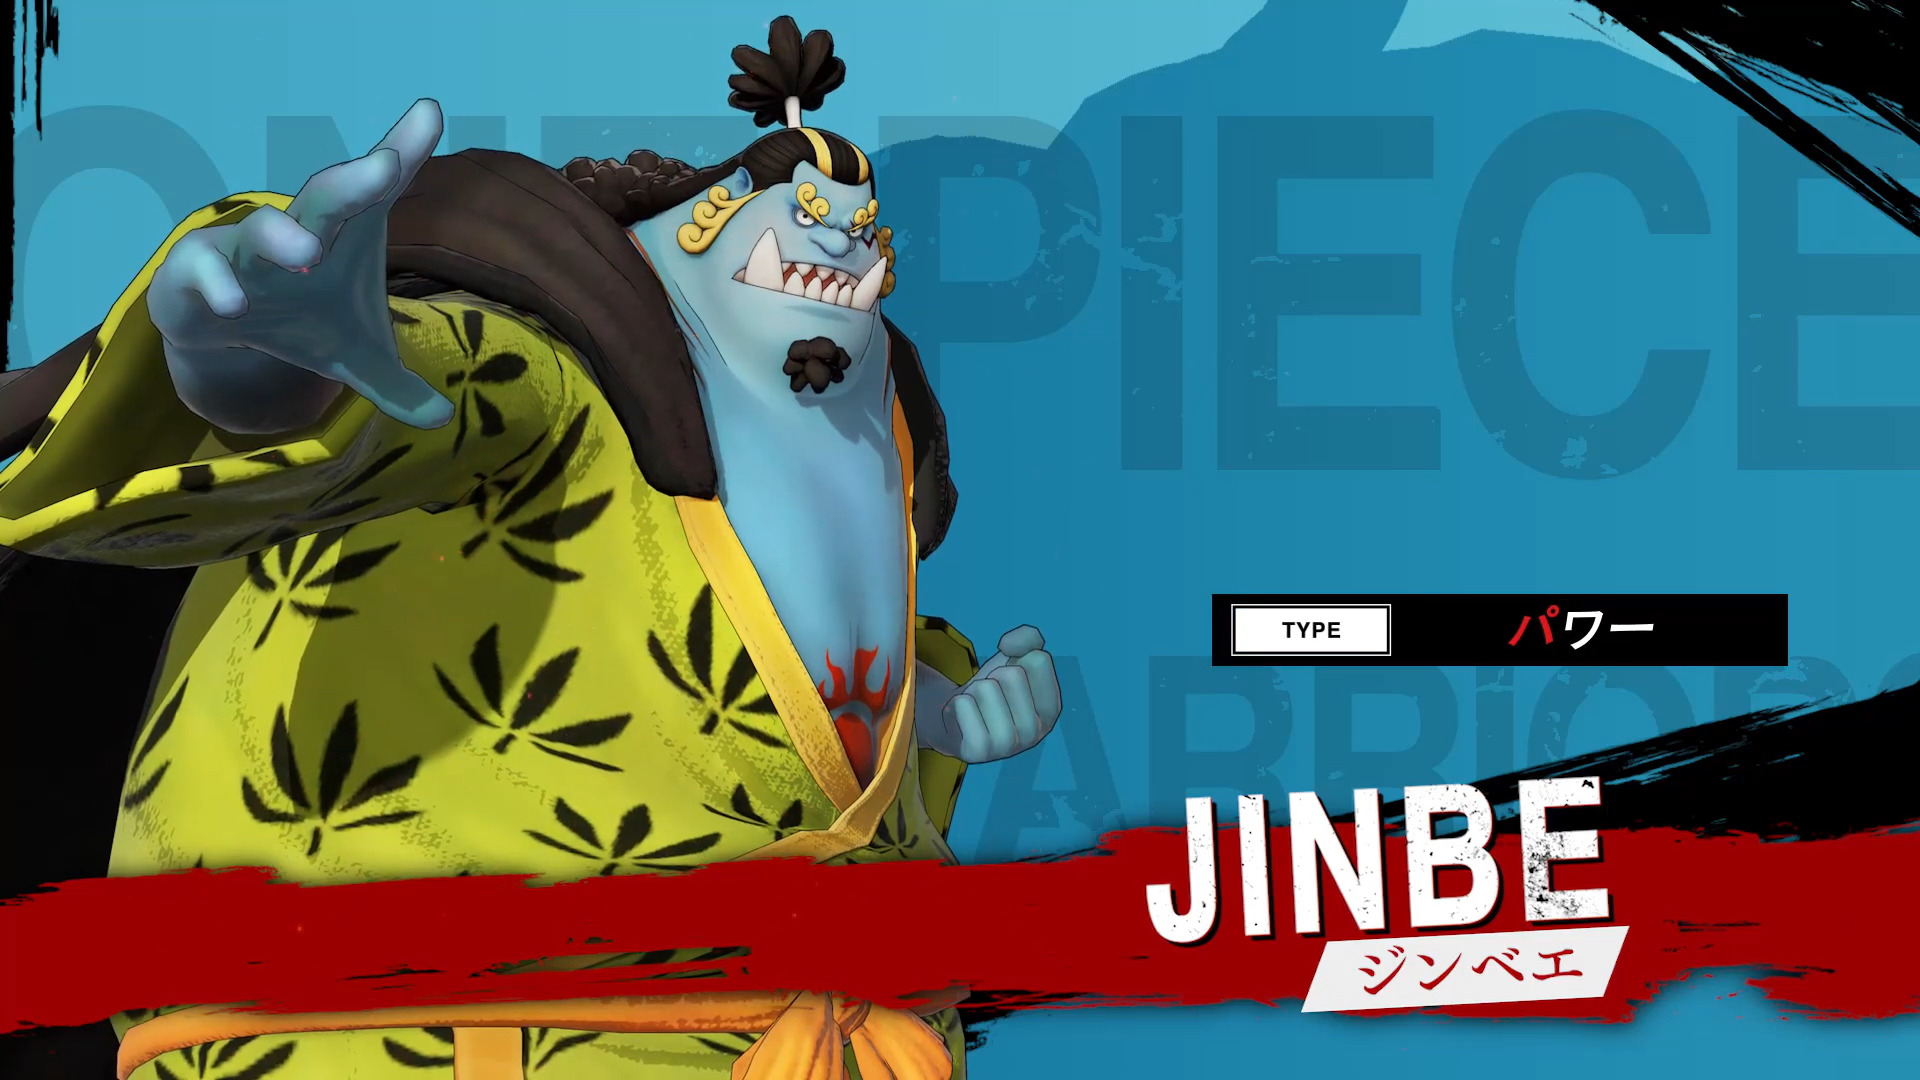 One Piece Pirate Warriors 4 Carrot Jinbei And Storm The New World Commercial Revealed Bunnygaming Com